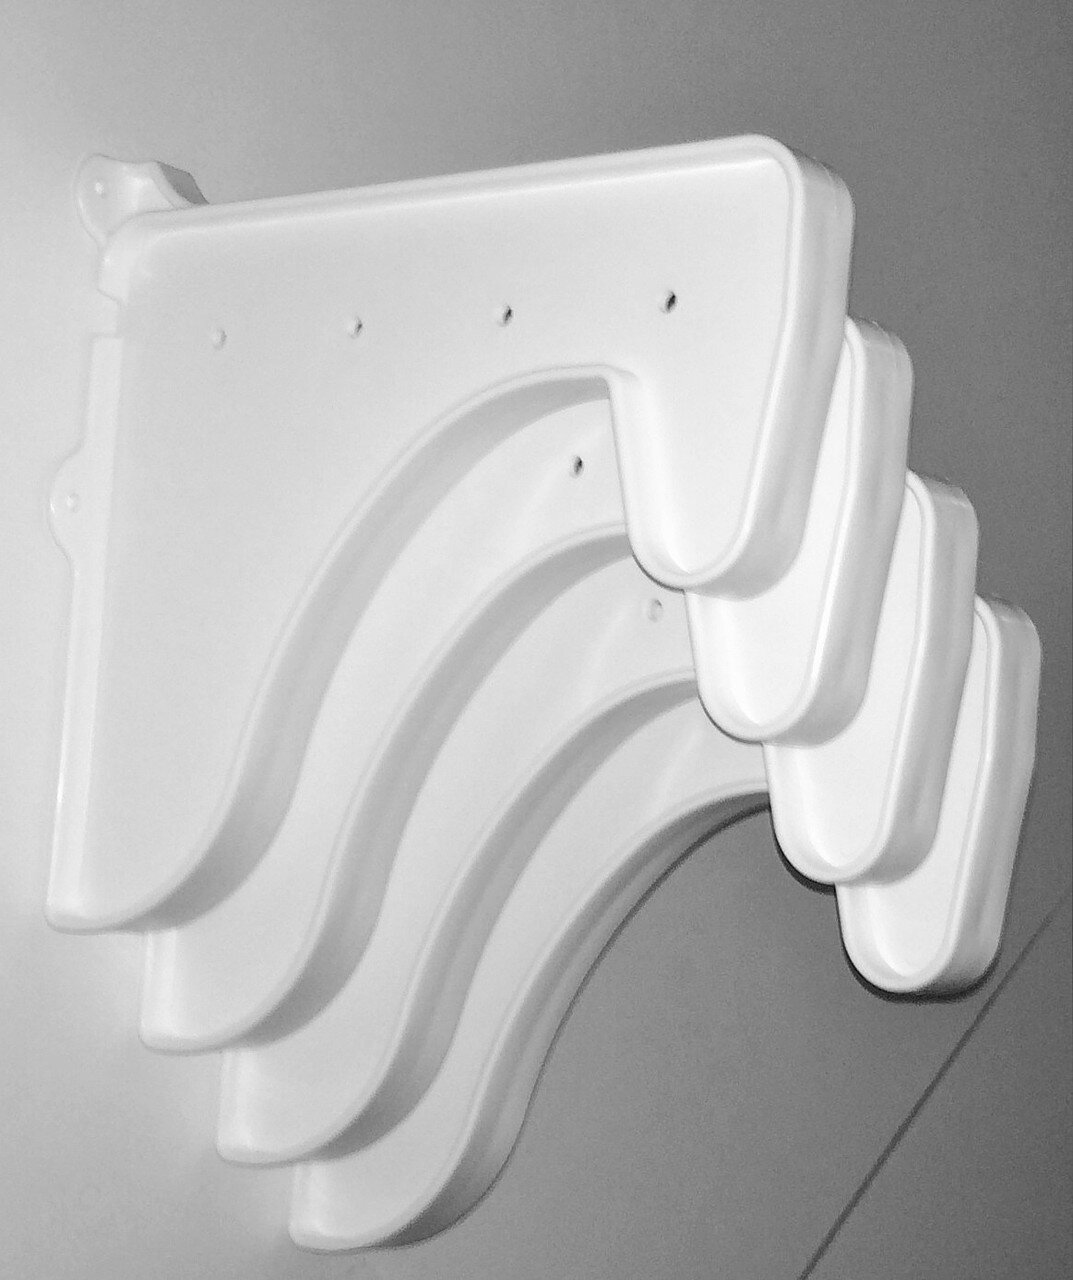 Picture of: Wfx Utility 4 End Brackets For Closet Rod And Shelf Wayfair